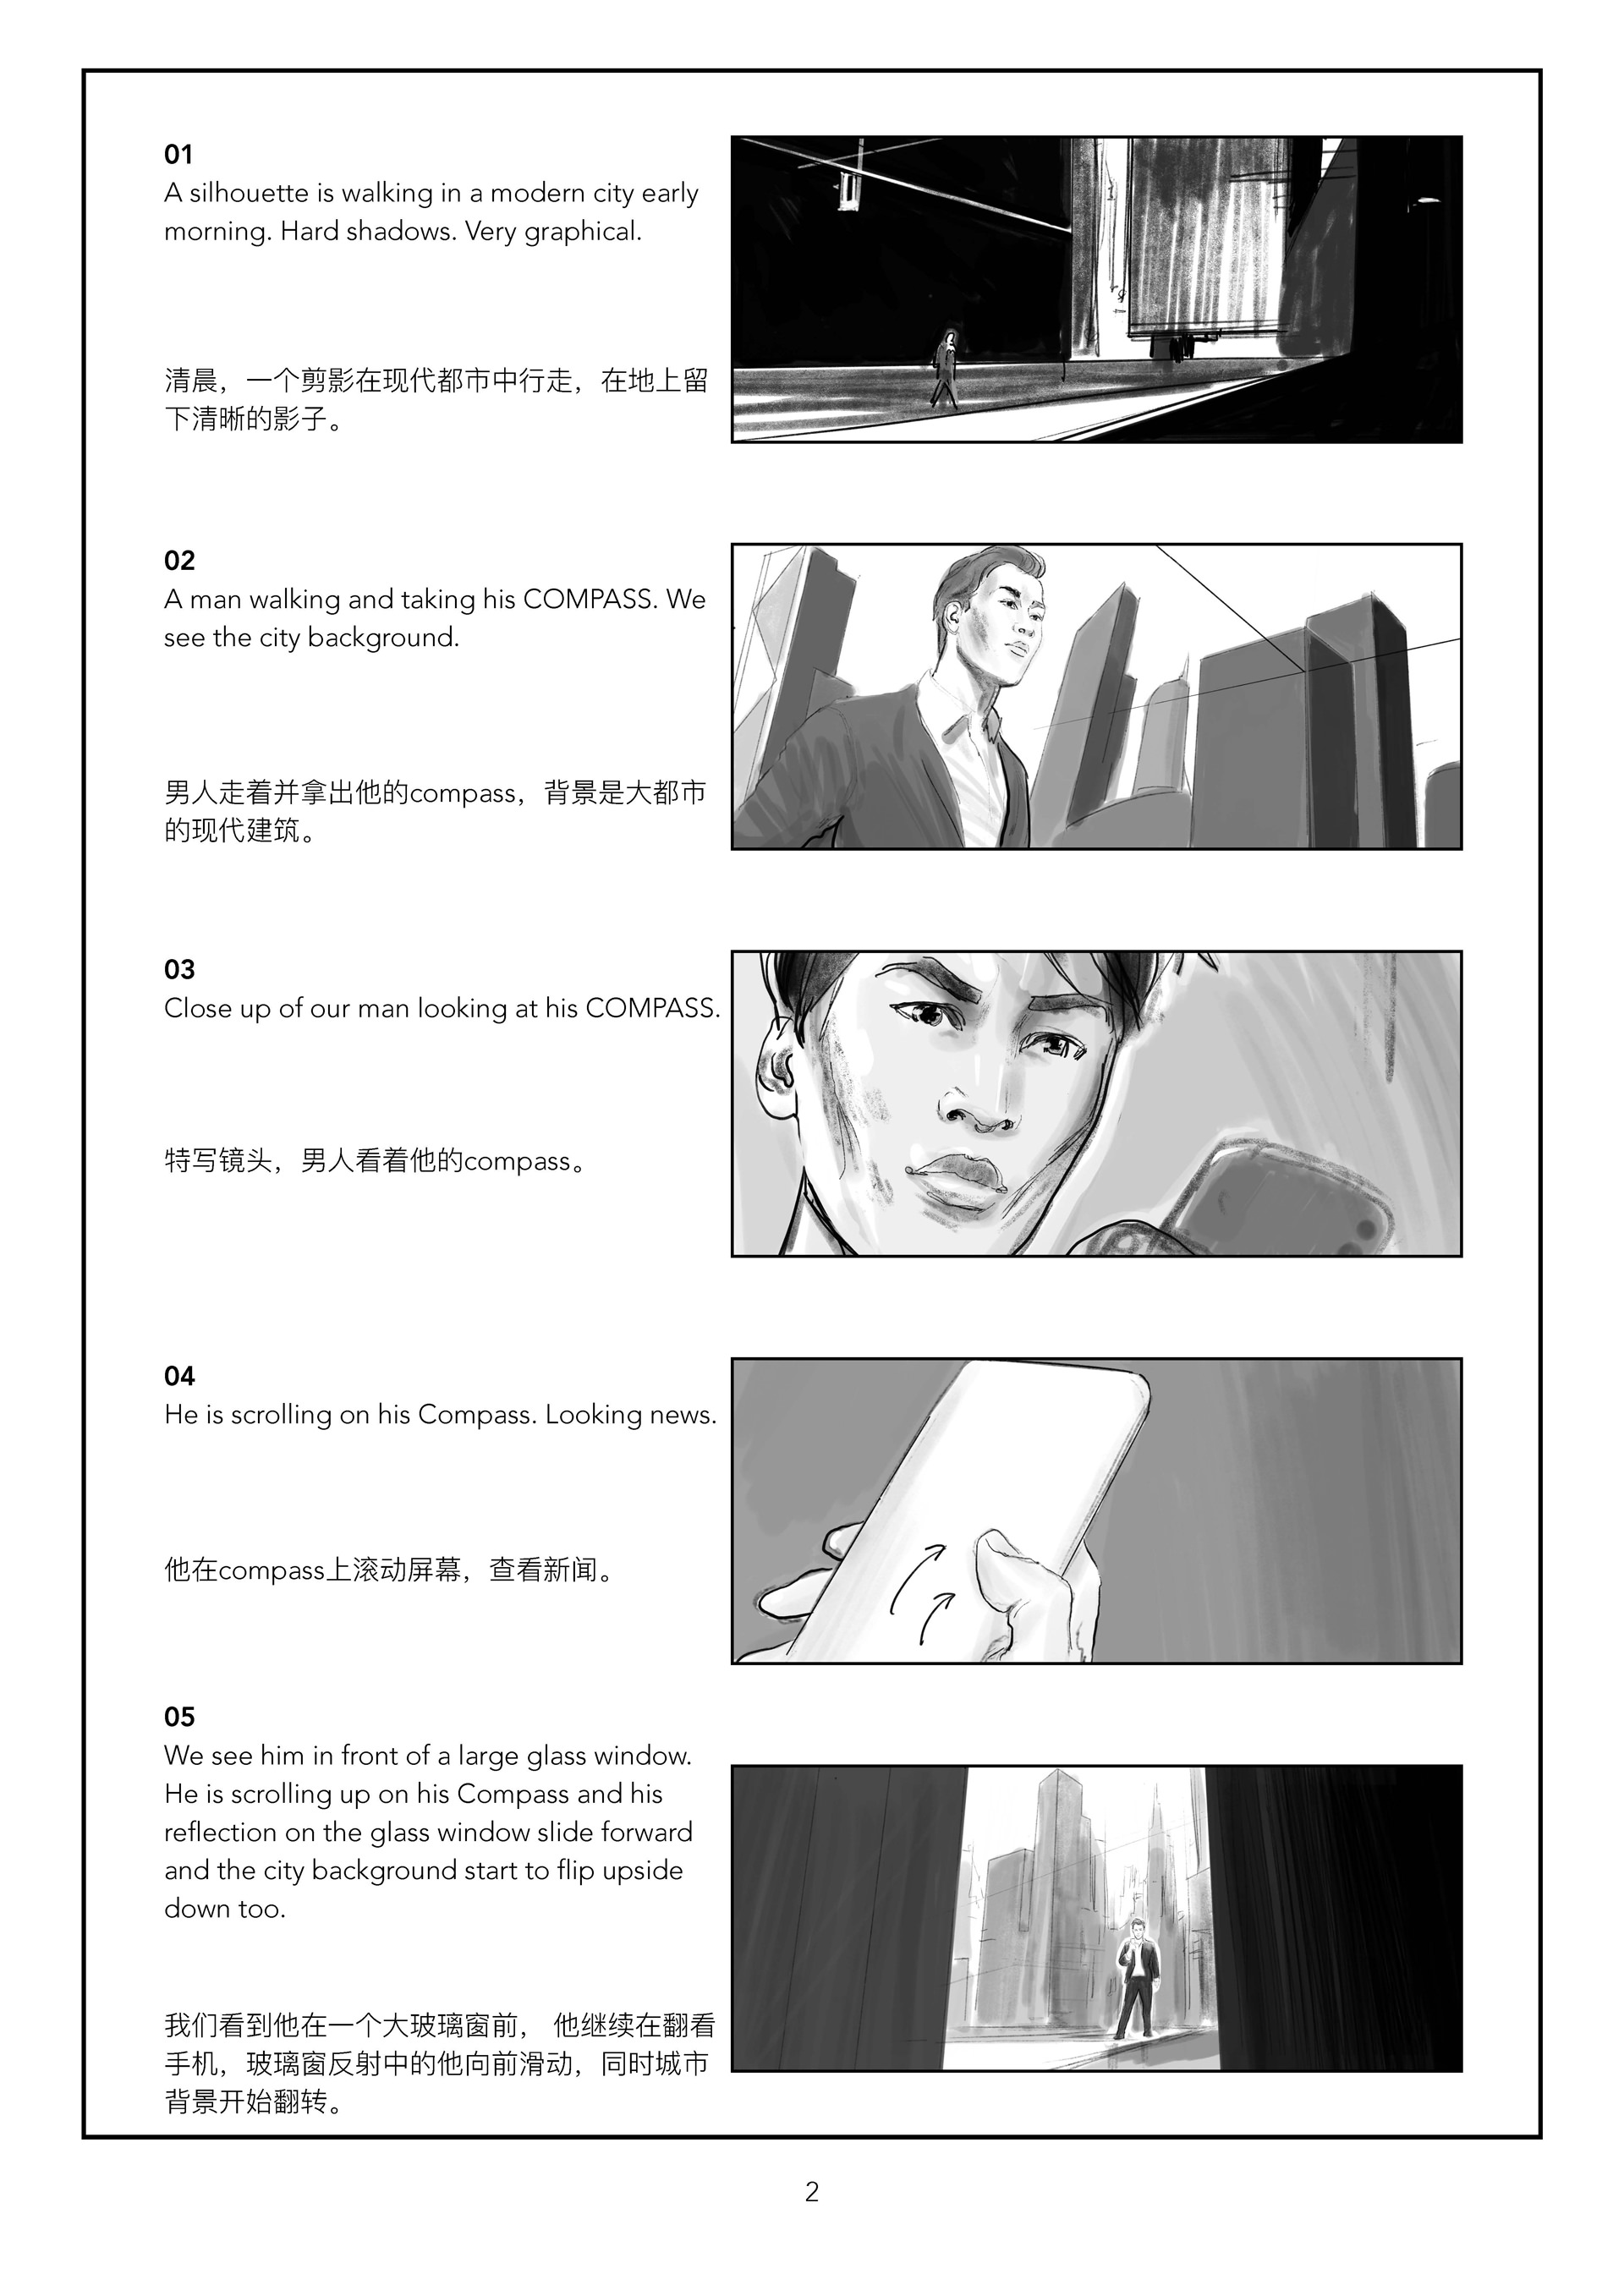 Oppo Compass storyboard 01